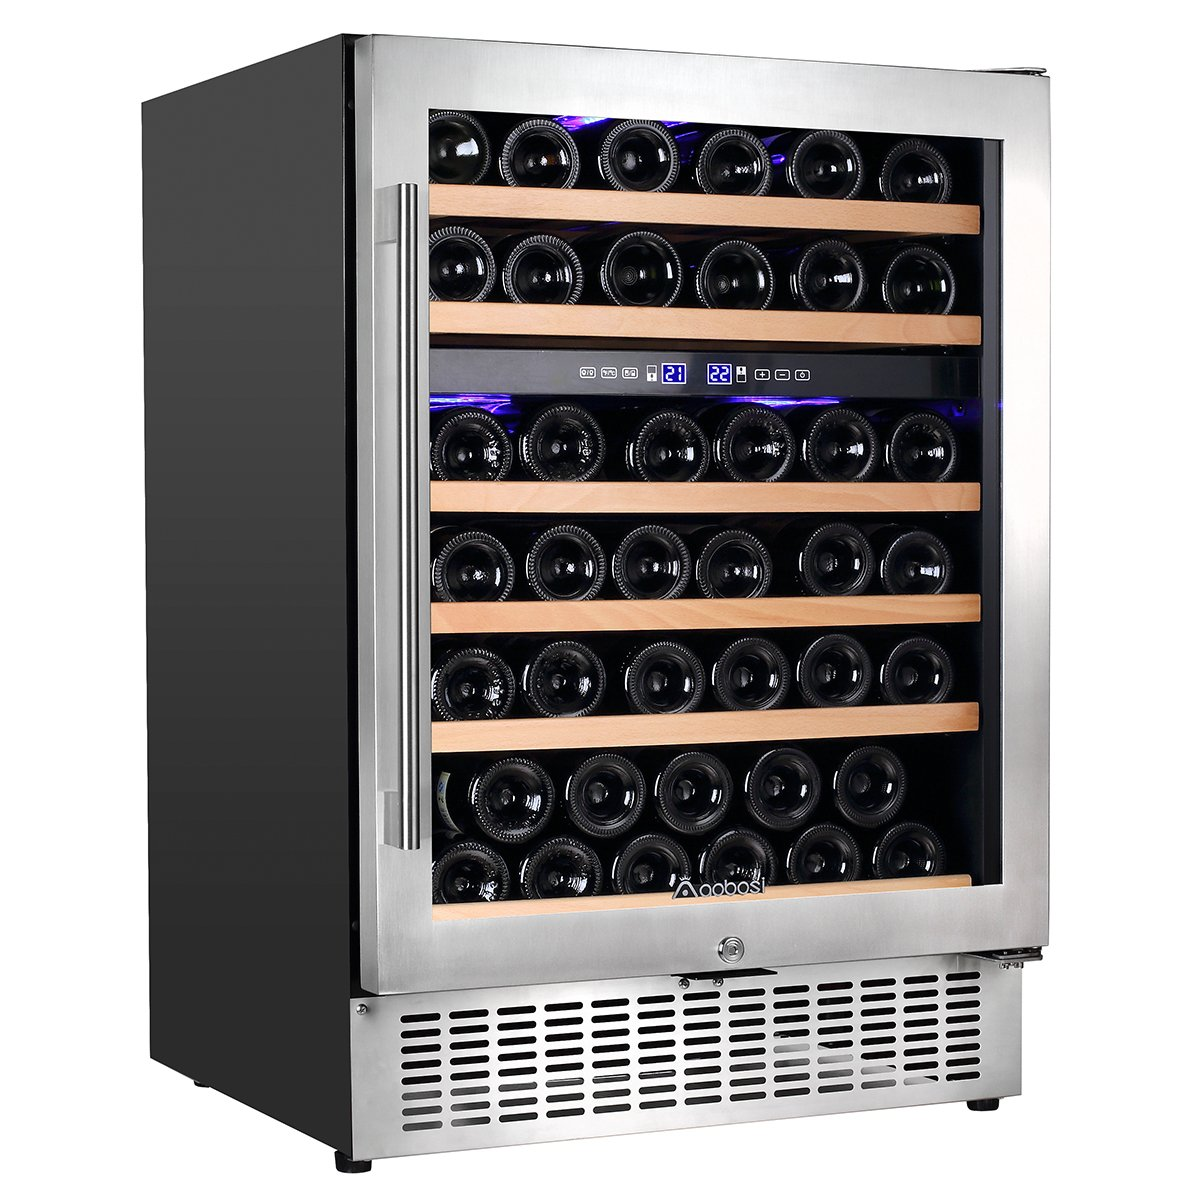 Aobosi Wine Cooler Refrigerator with 51 Bottles Dual Zones,Classy Look, Stainless Steel & Reversible Glass Door,and LED Display | Thermostatic Wine Refrigerator for Red and White Wine, Champagne,Beve